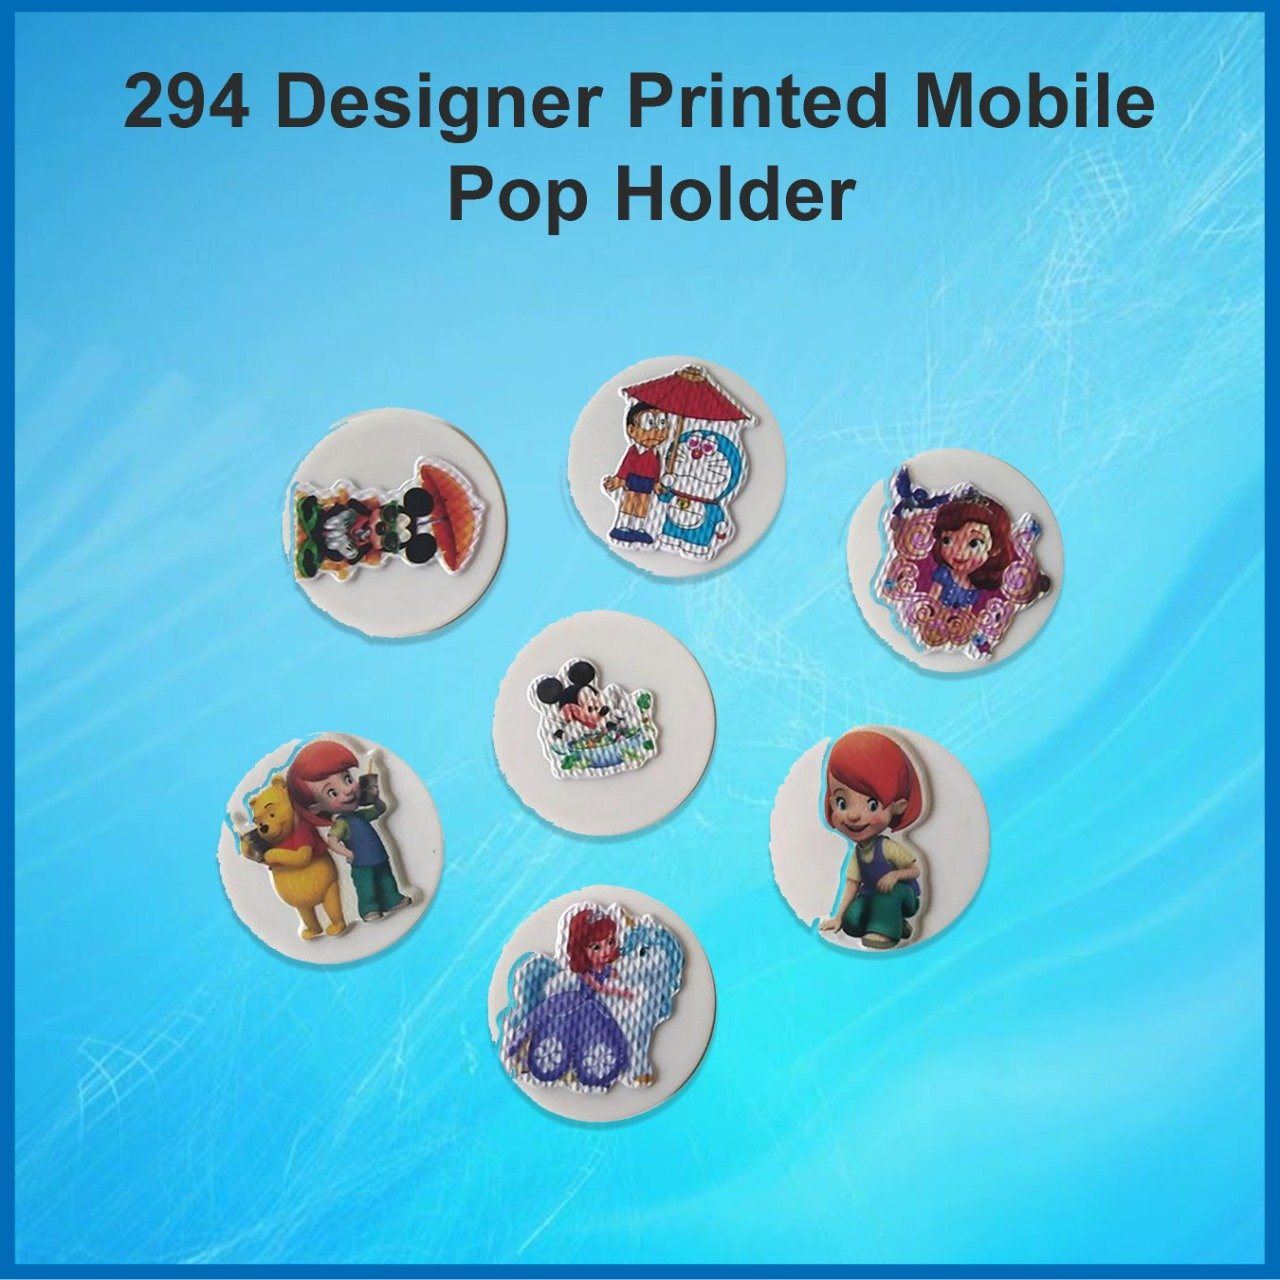 294 Designer Printed Mobile Pop Holder